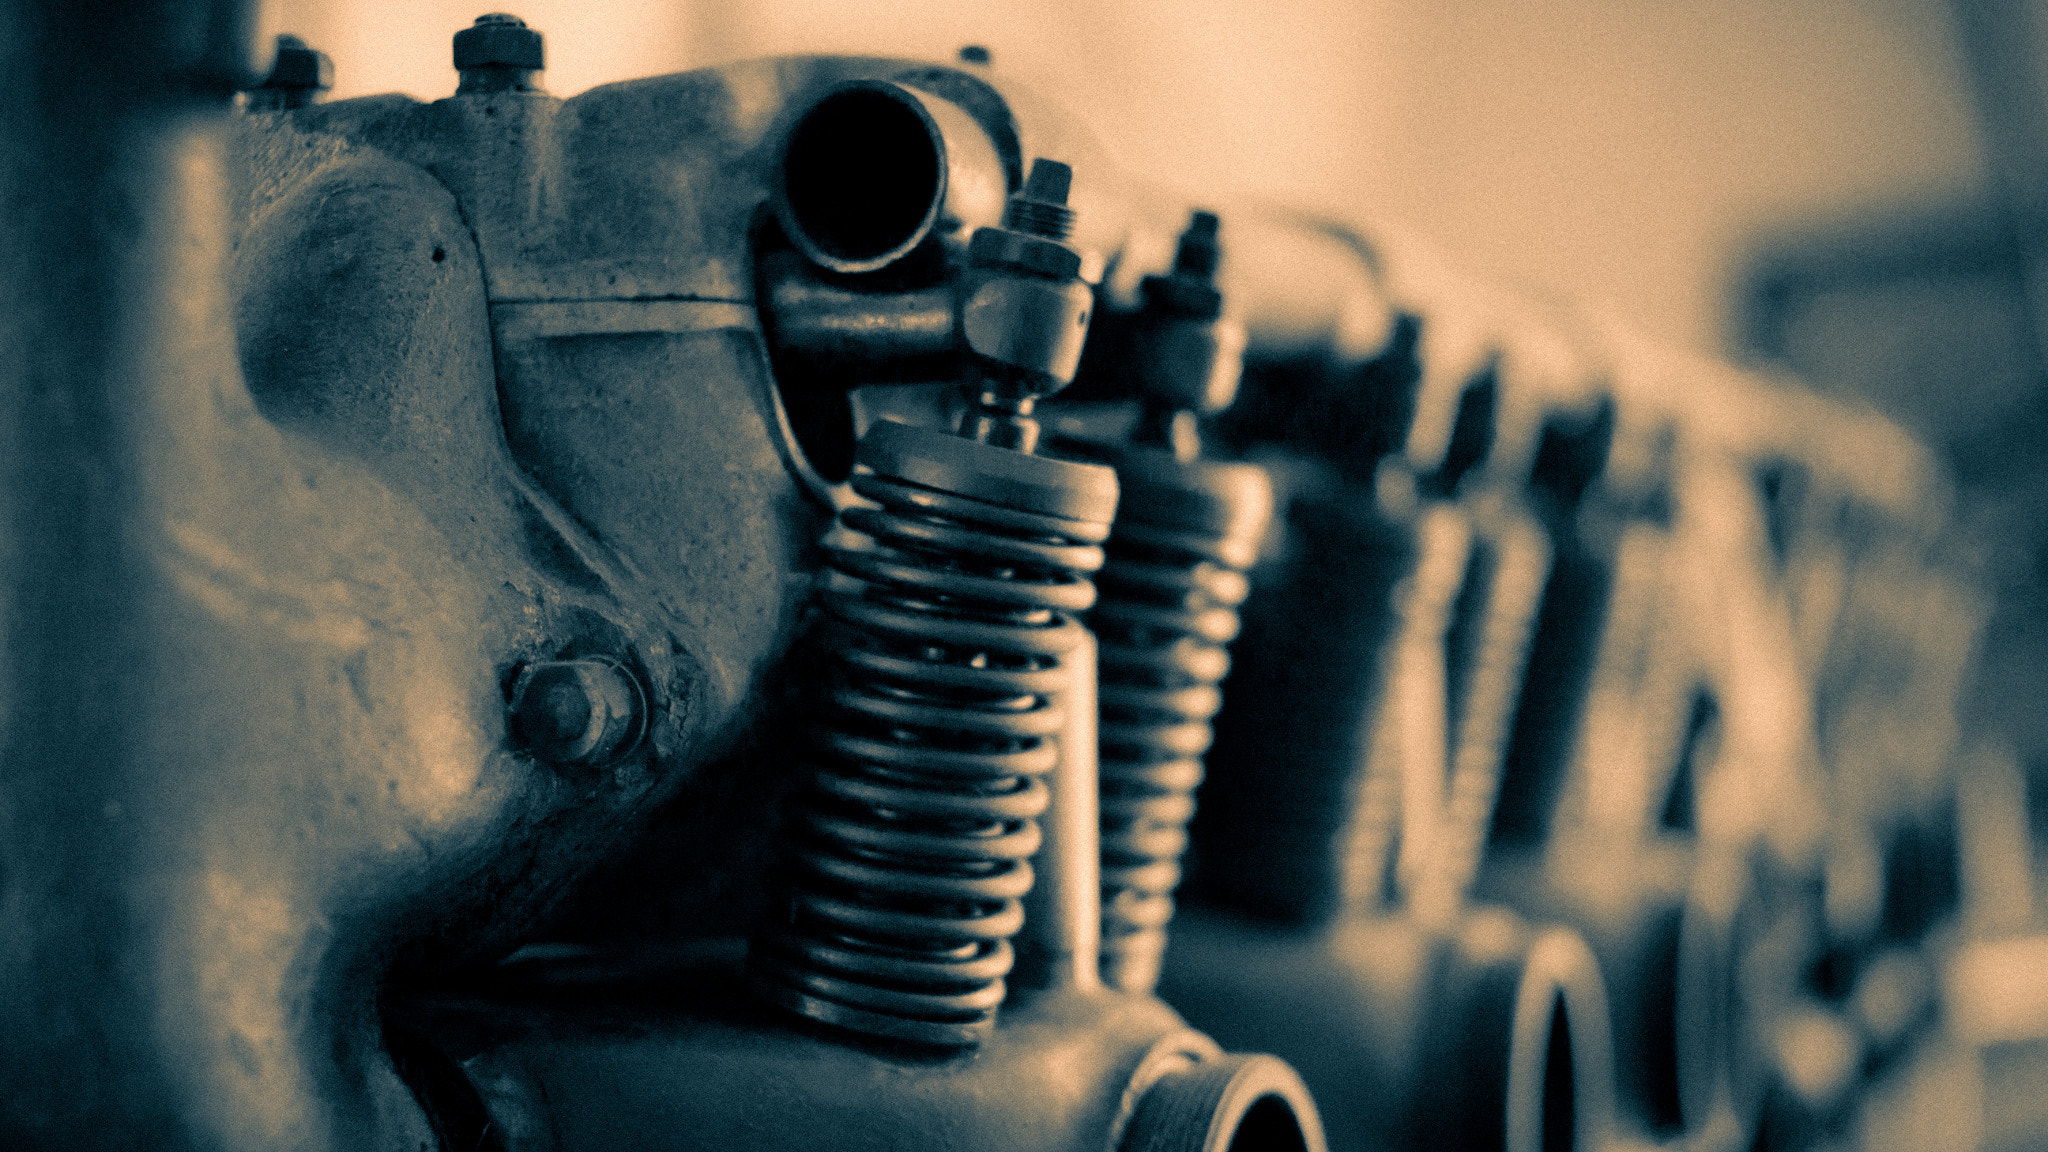 Photograph Old Engines are sexier by Stefan Steinbauer on 500px